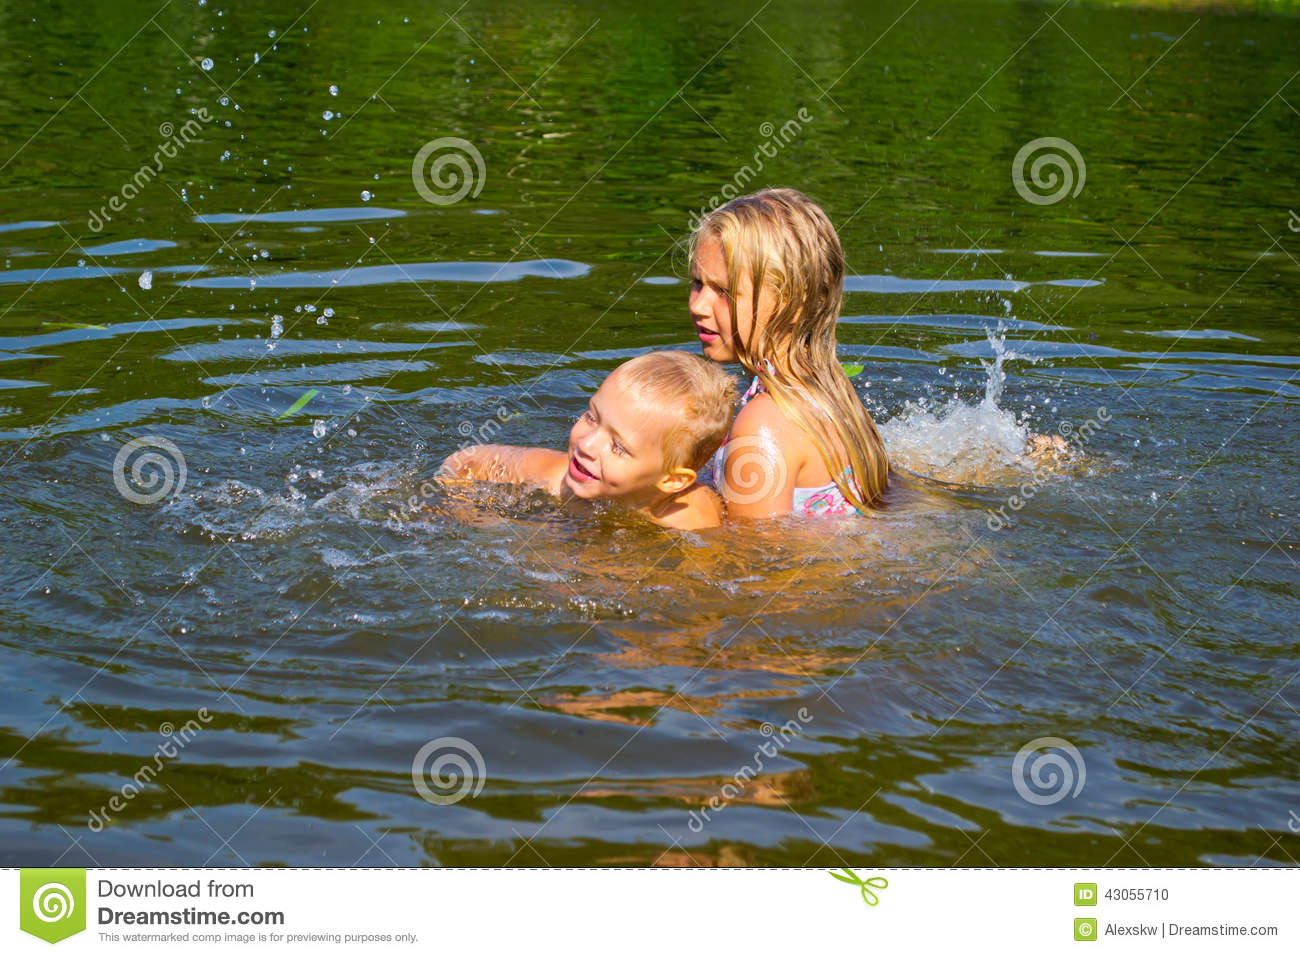 Children Swimming In The River Stock Photo - Image: 43055710